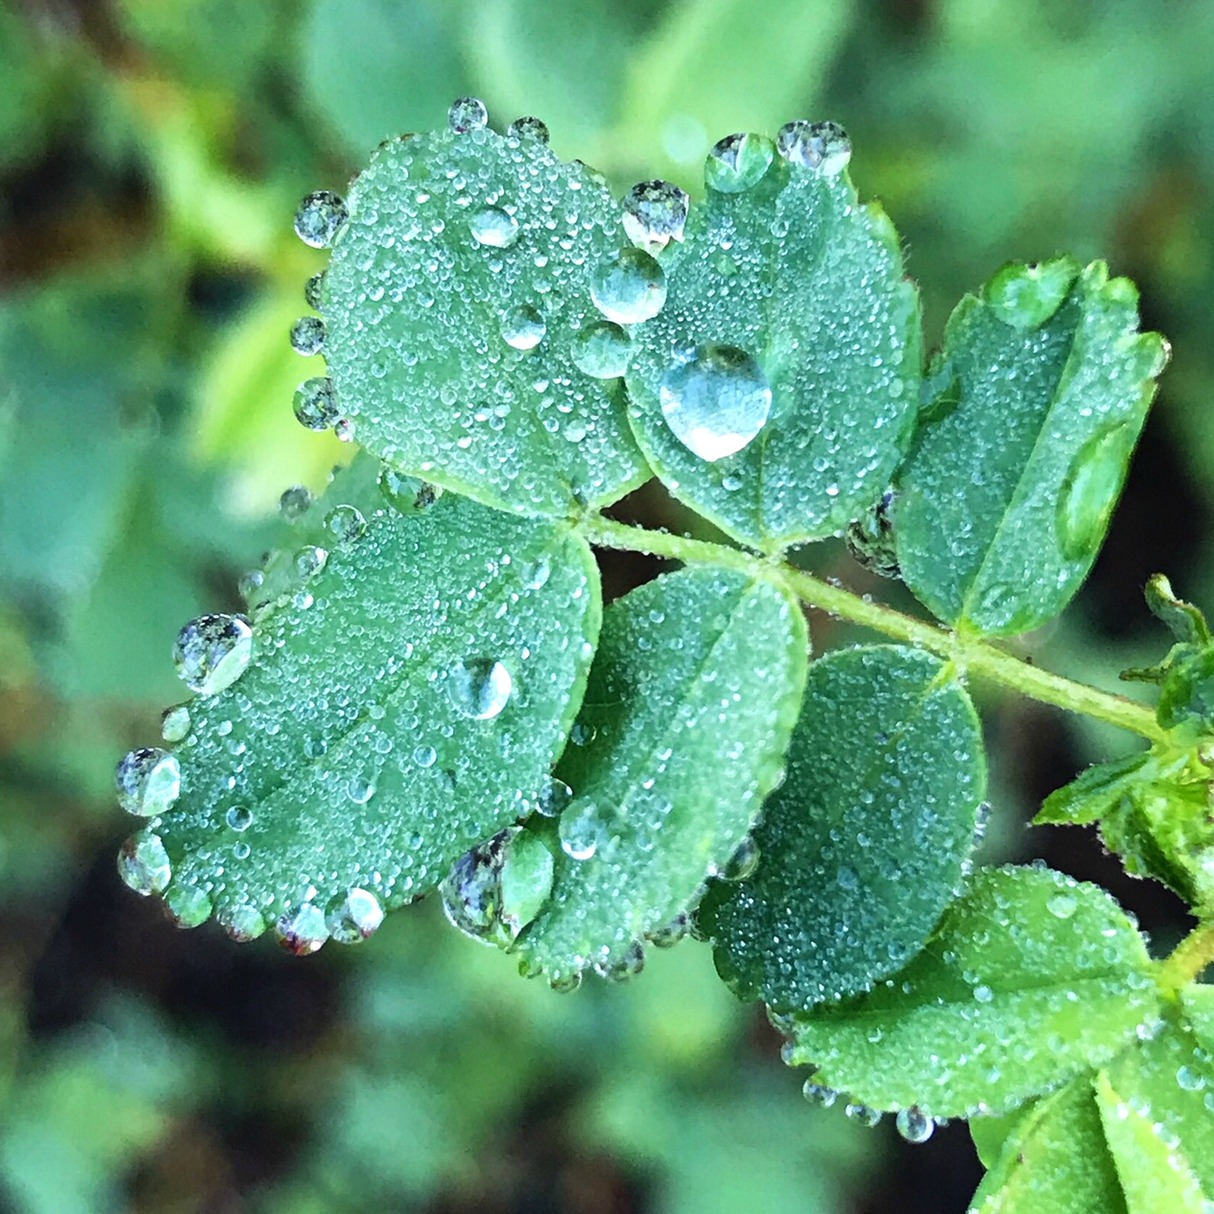 Morning dew on the leaves.